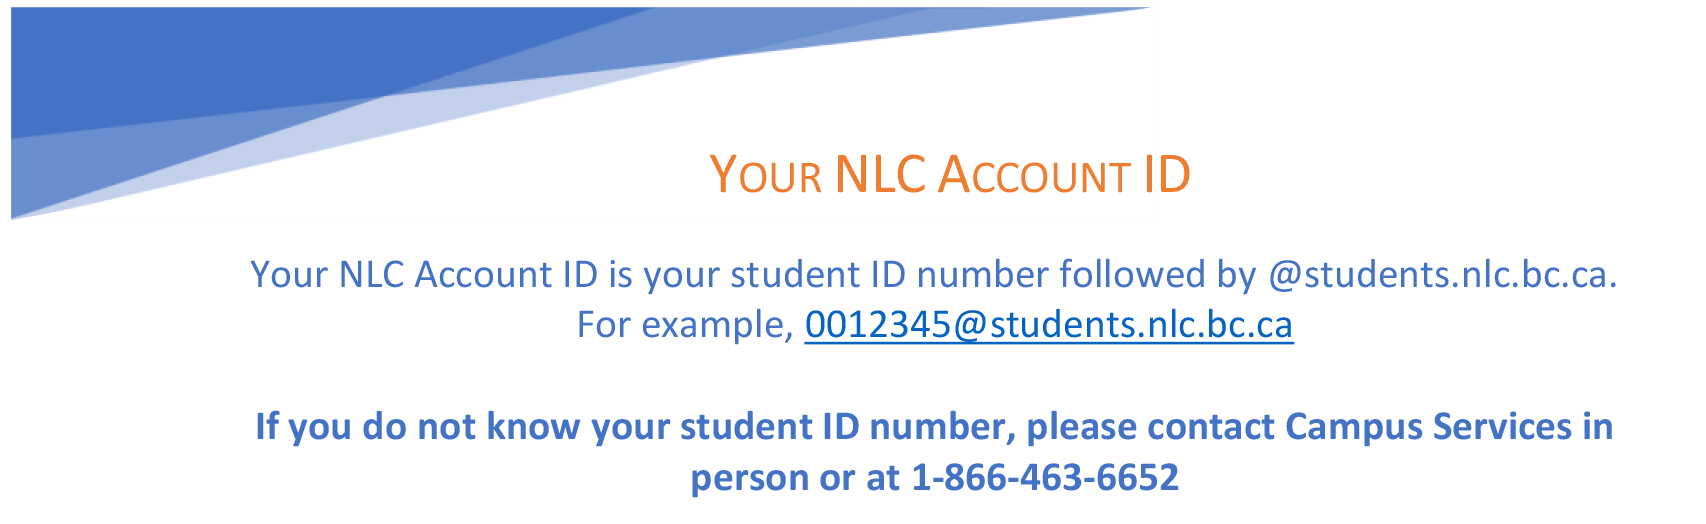 NLC Acount ID description